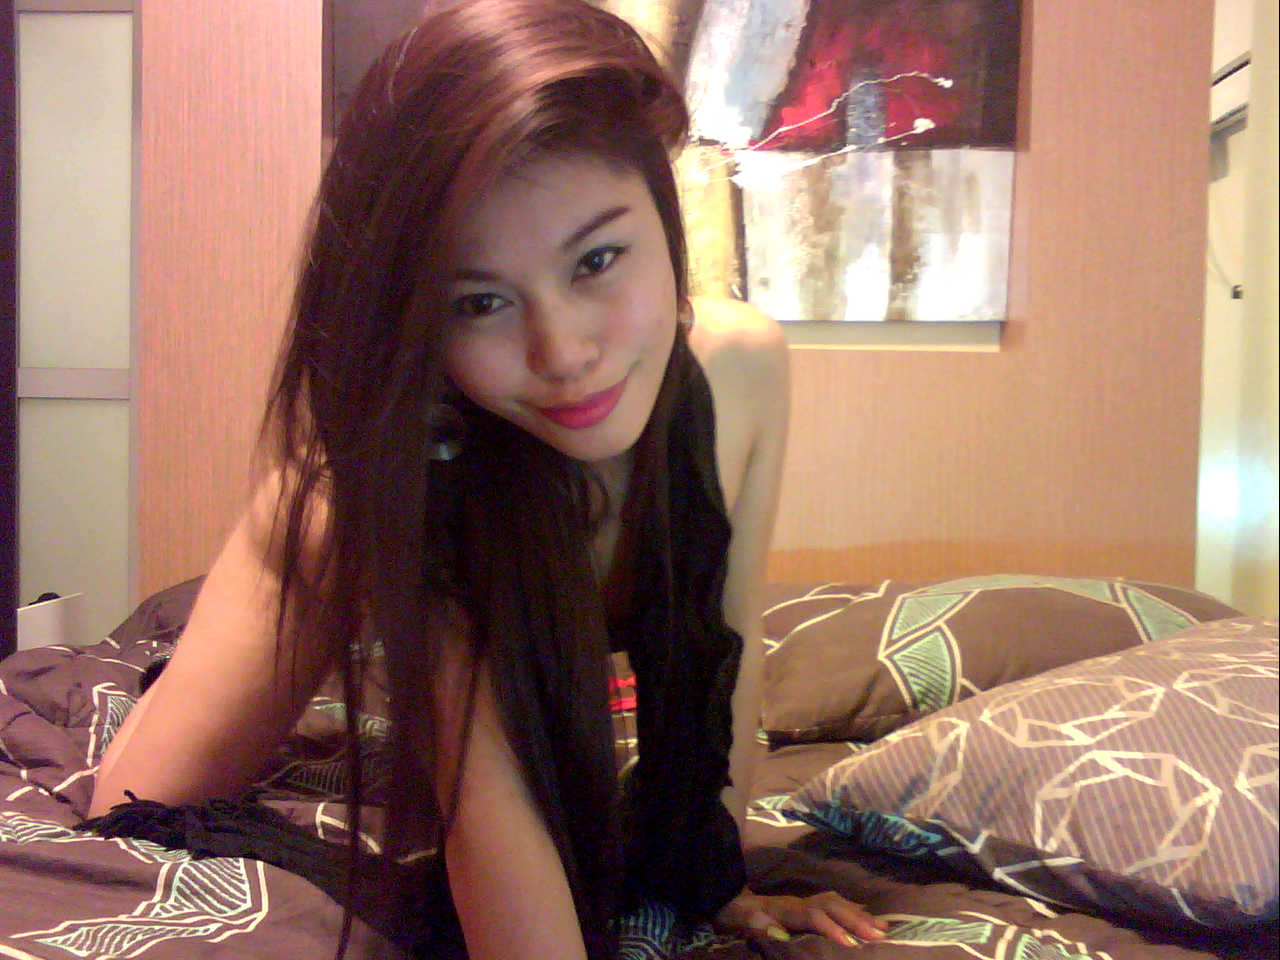 Pinoy sex online